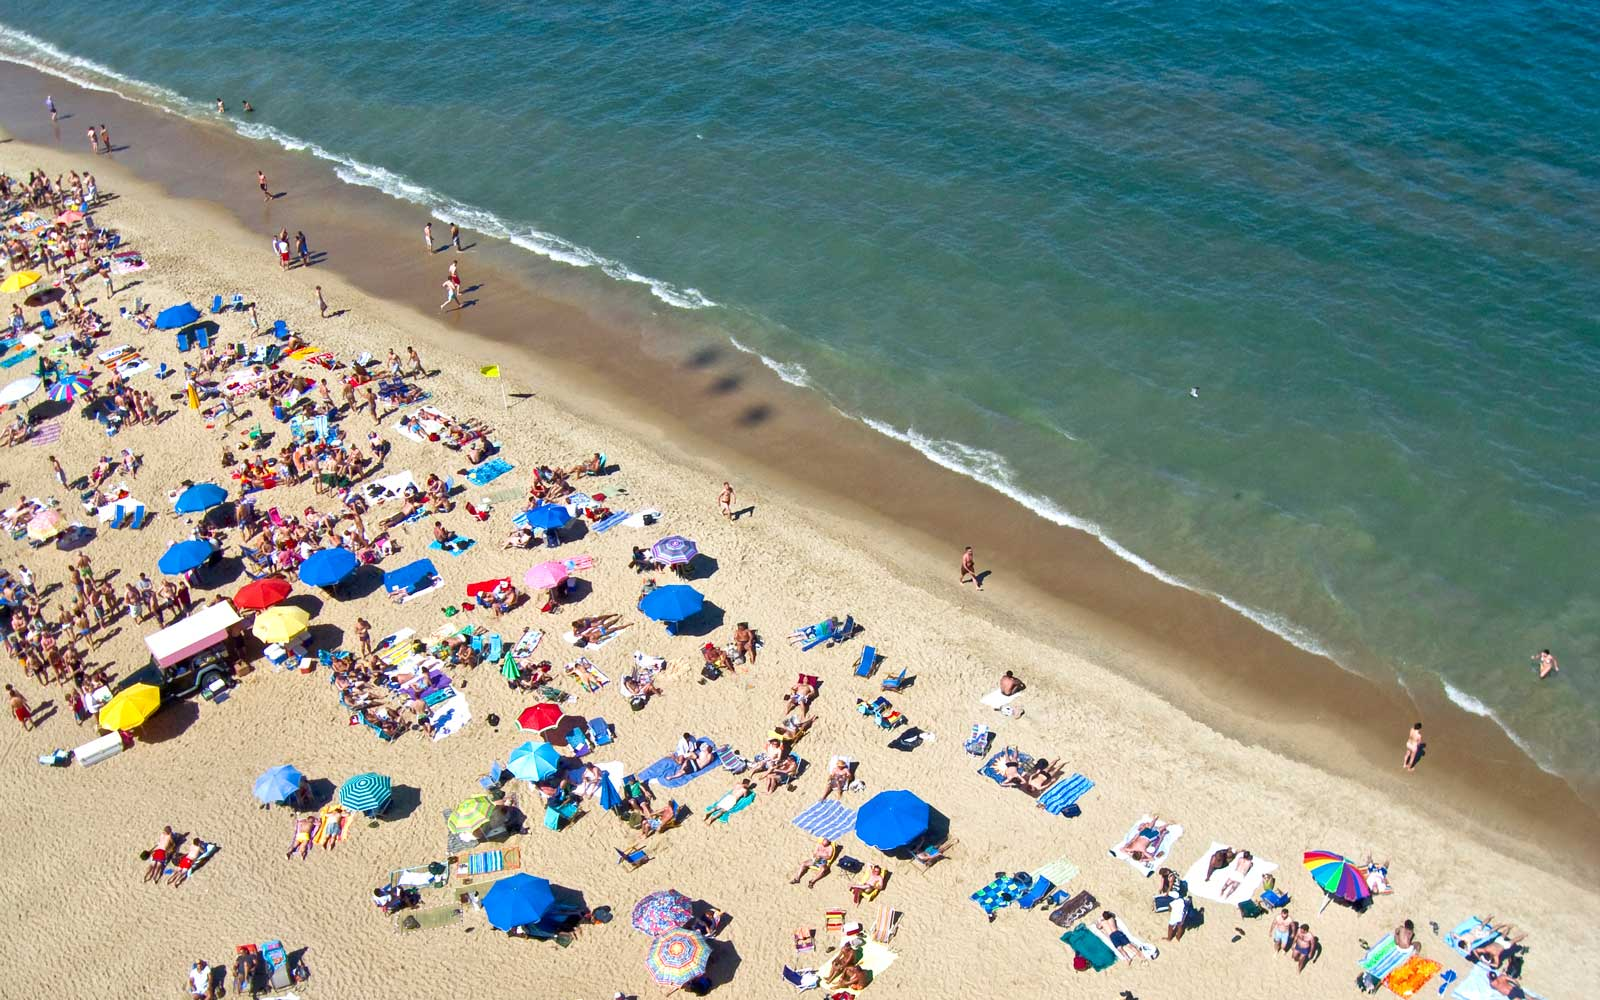 Best Memorial Day destinations according to Yelp